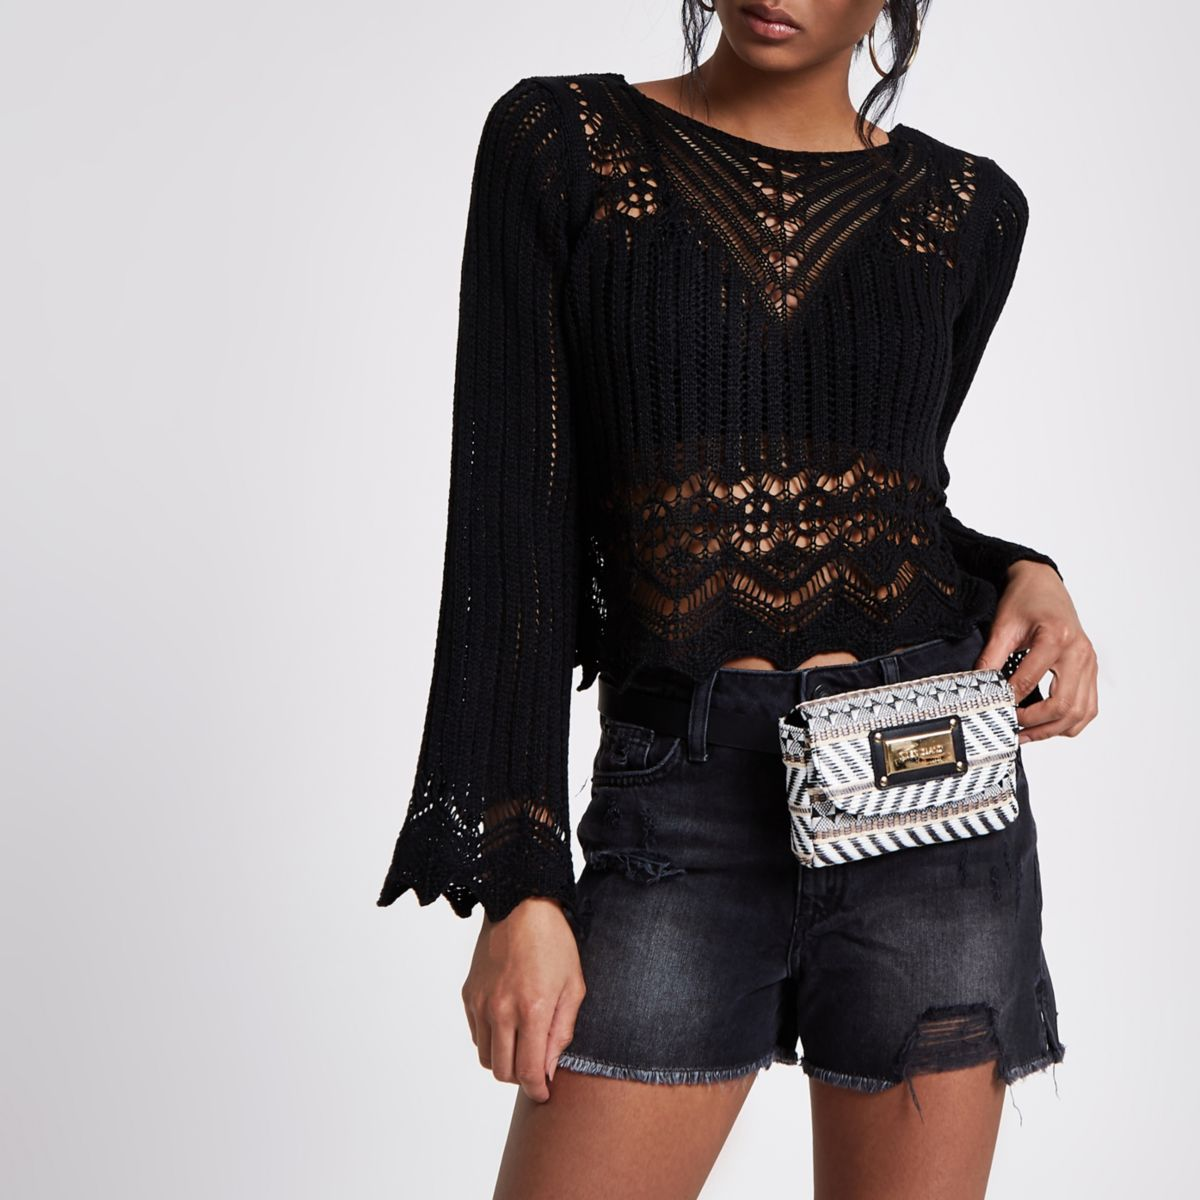 Black crochet knit long sleeve top